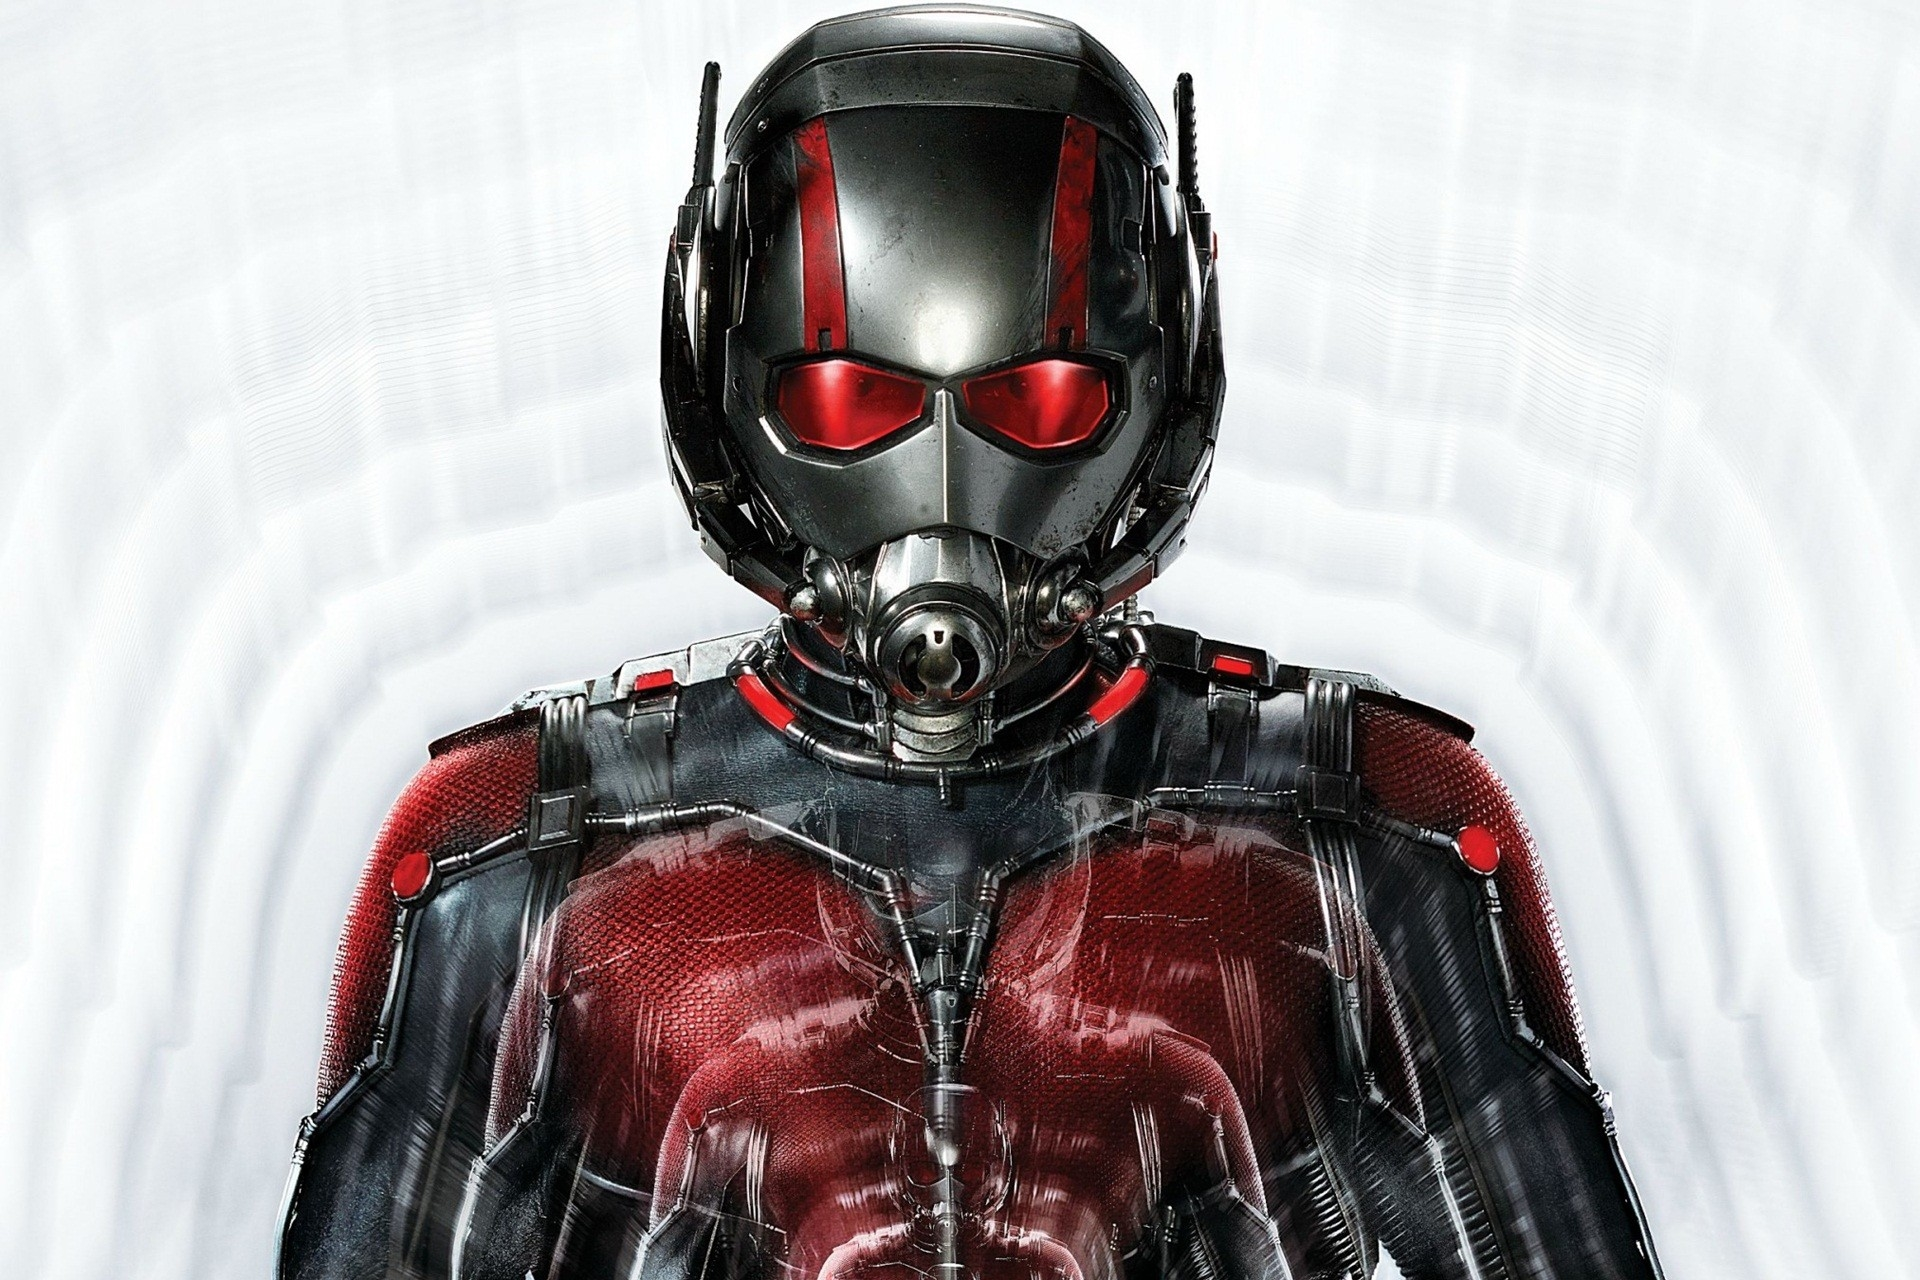 This is an image of Old Fashioned Marvel Heroes Ant Man